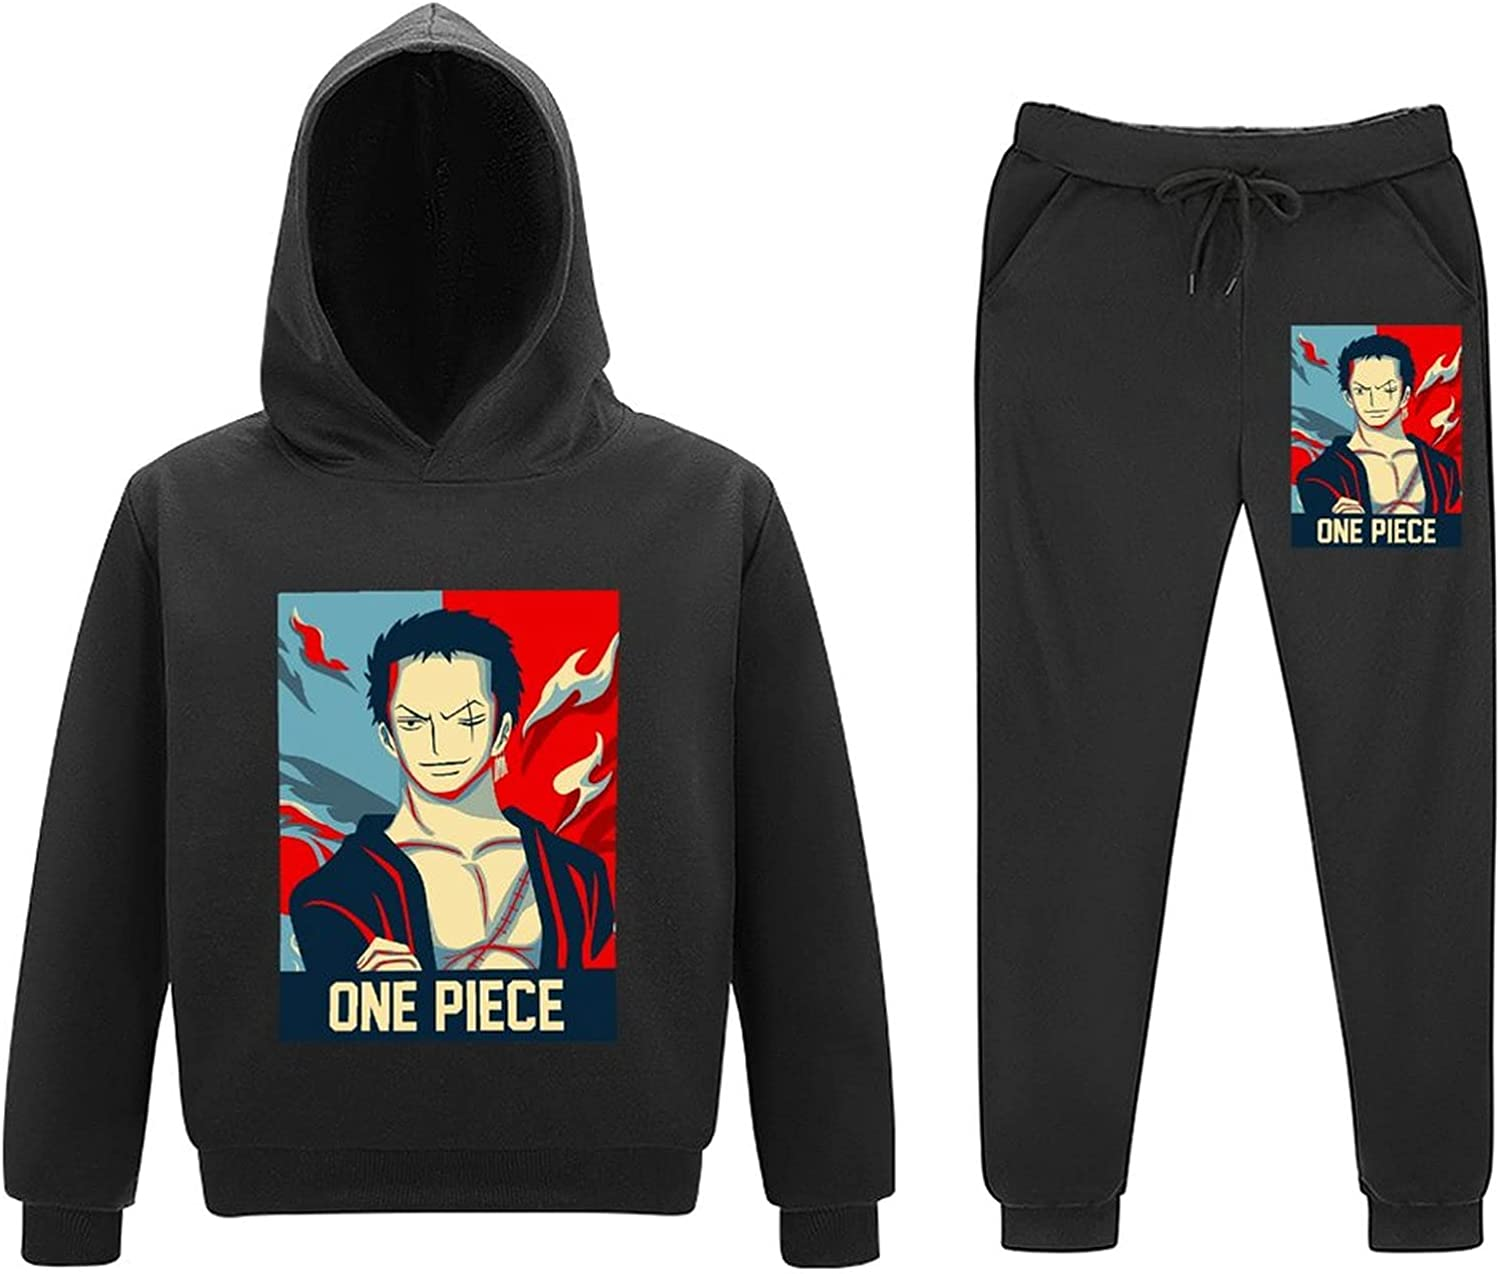 5-11Y Roro-noa 5% OFF Zoro Kids Toddler Arlington Mall Piece Pull Sweatsuits 2 Outfits